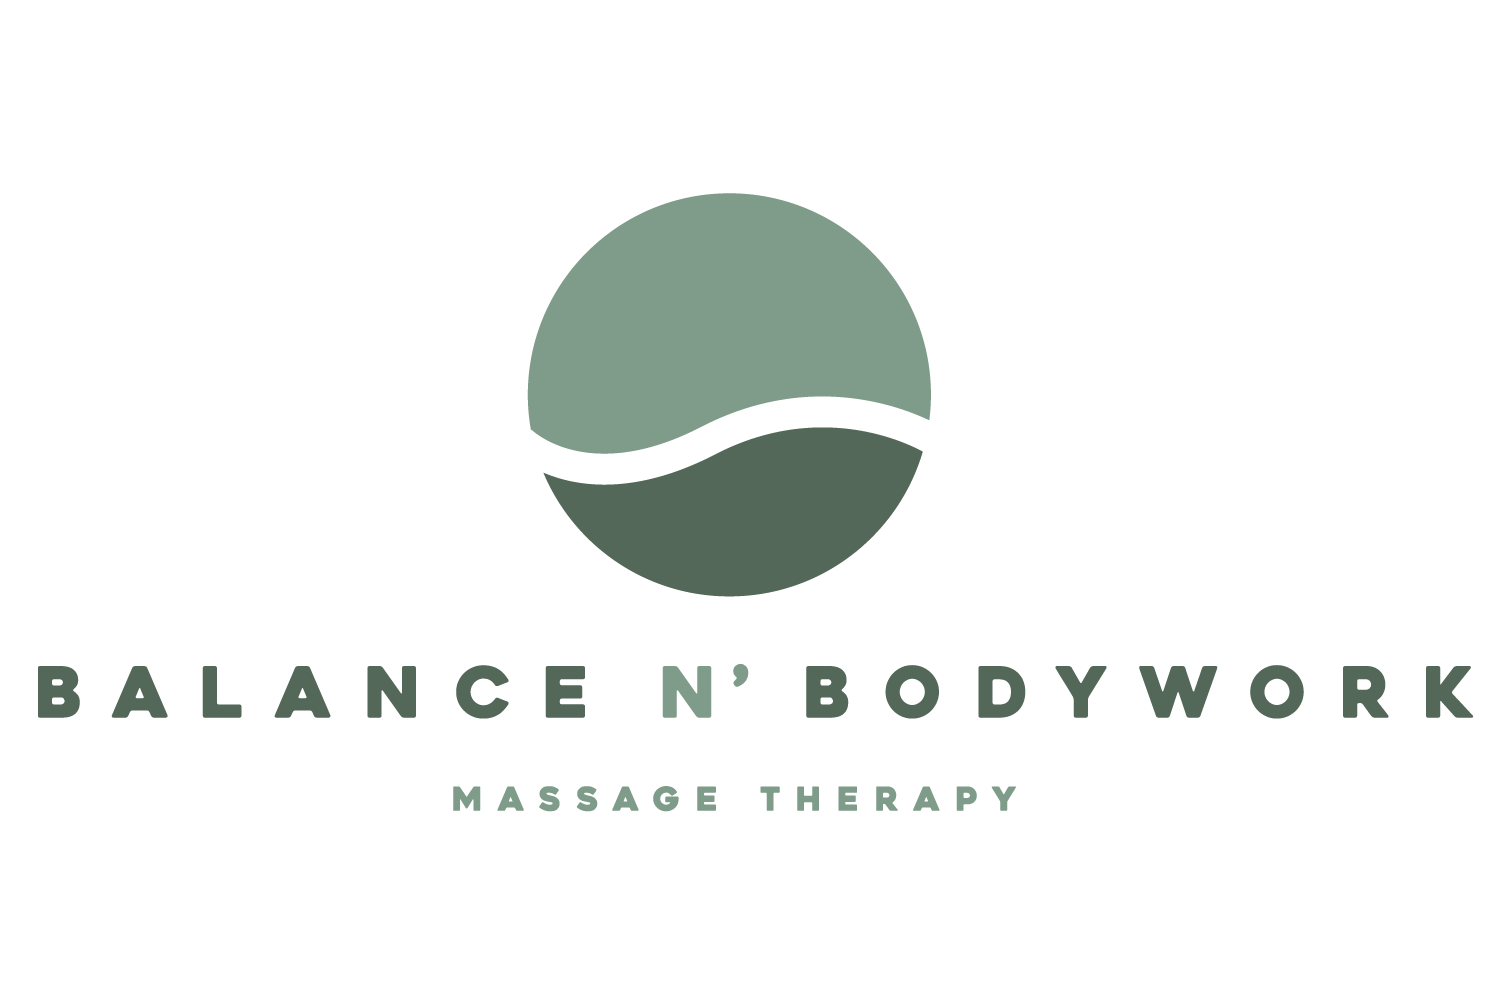 Balance N' Bodywork Massage Therapy